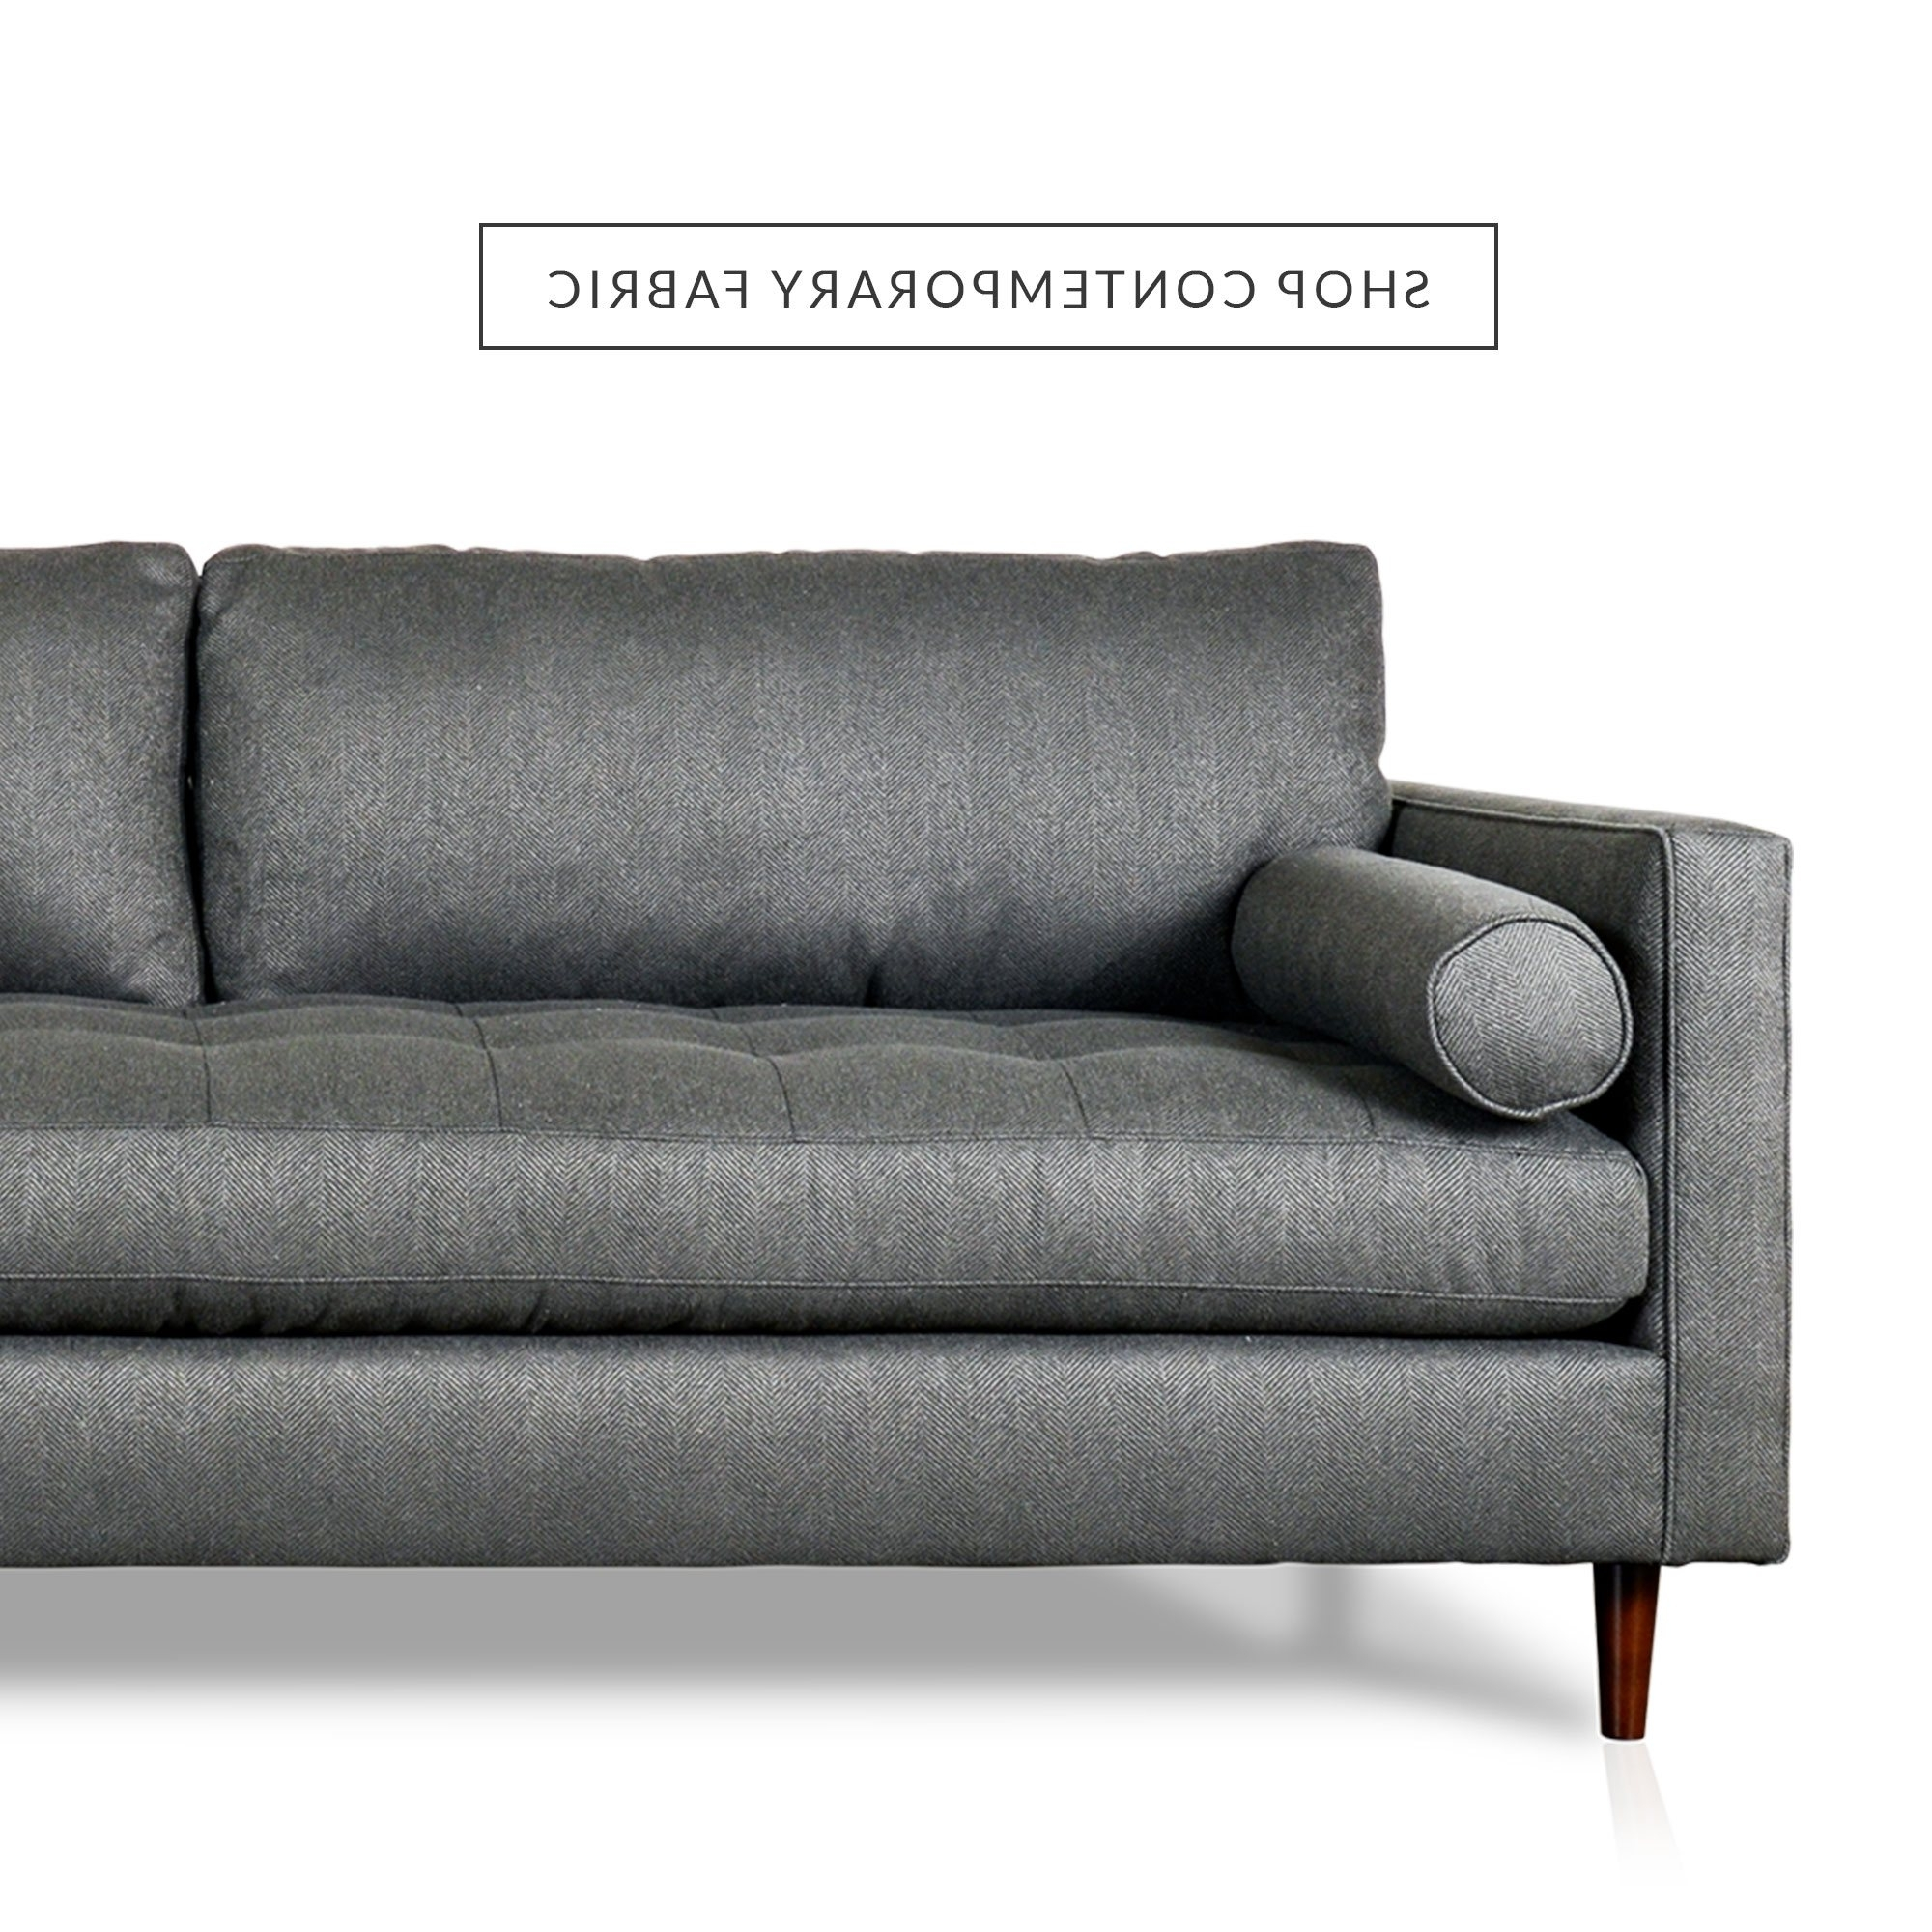 Sectional Sofas At Brampton Pertaining To Latest Chesterfield Sofas, Modern Furniture Made In Usa (View 11 of 15)